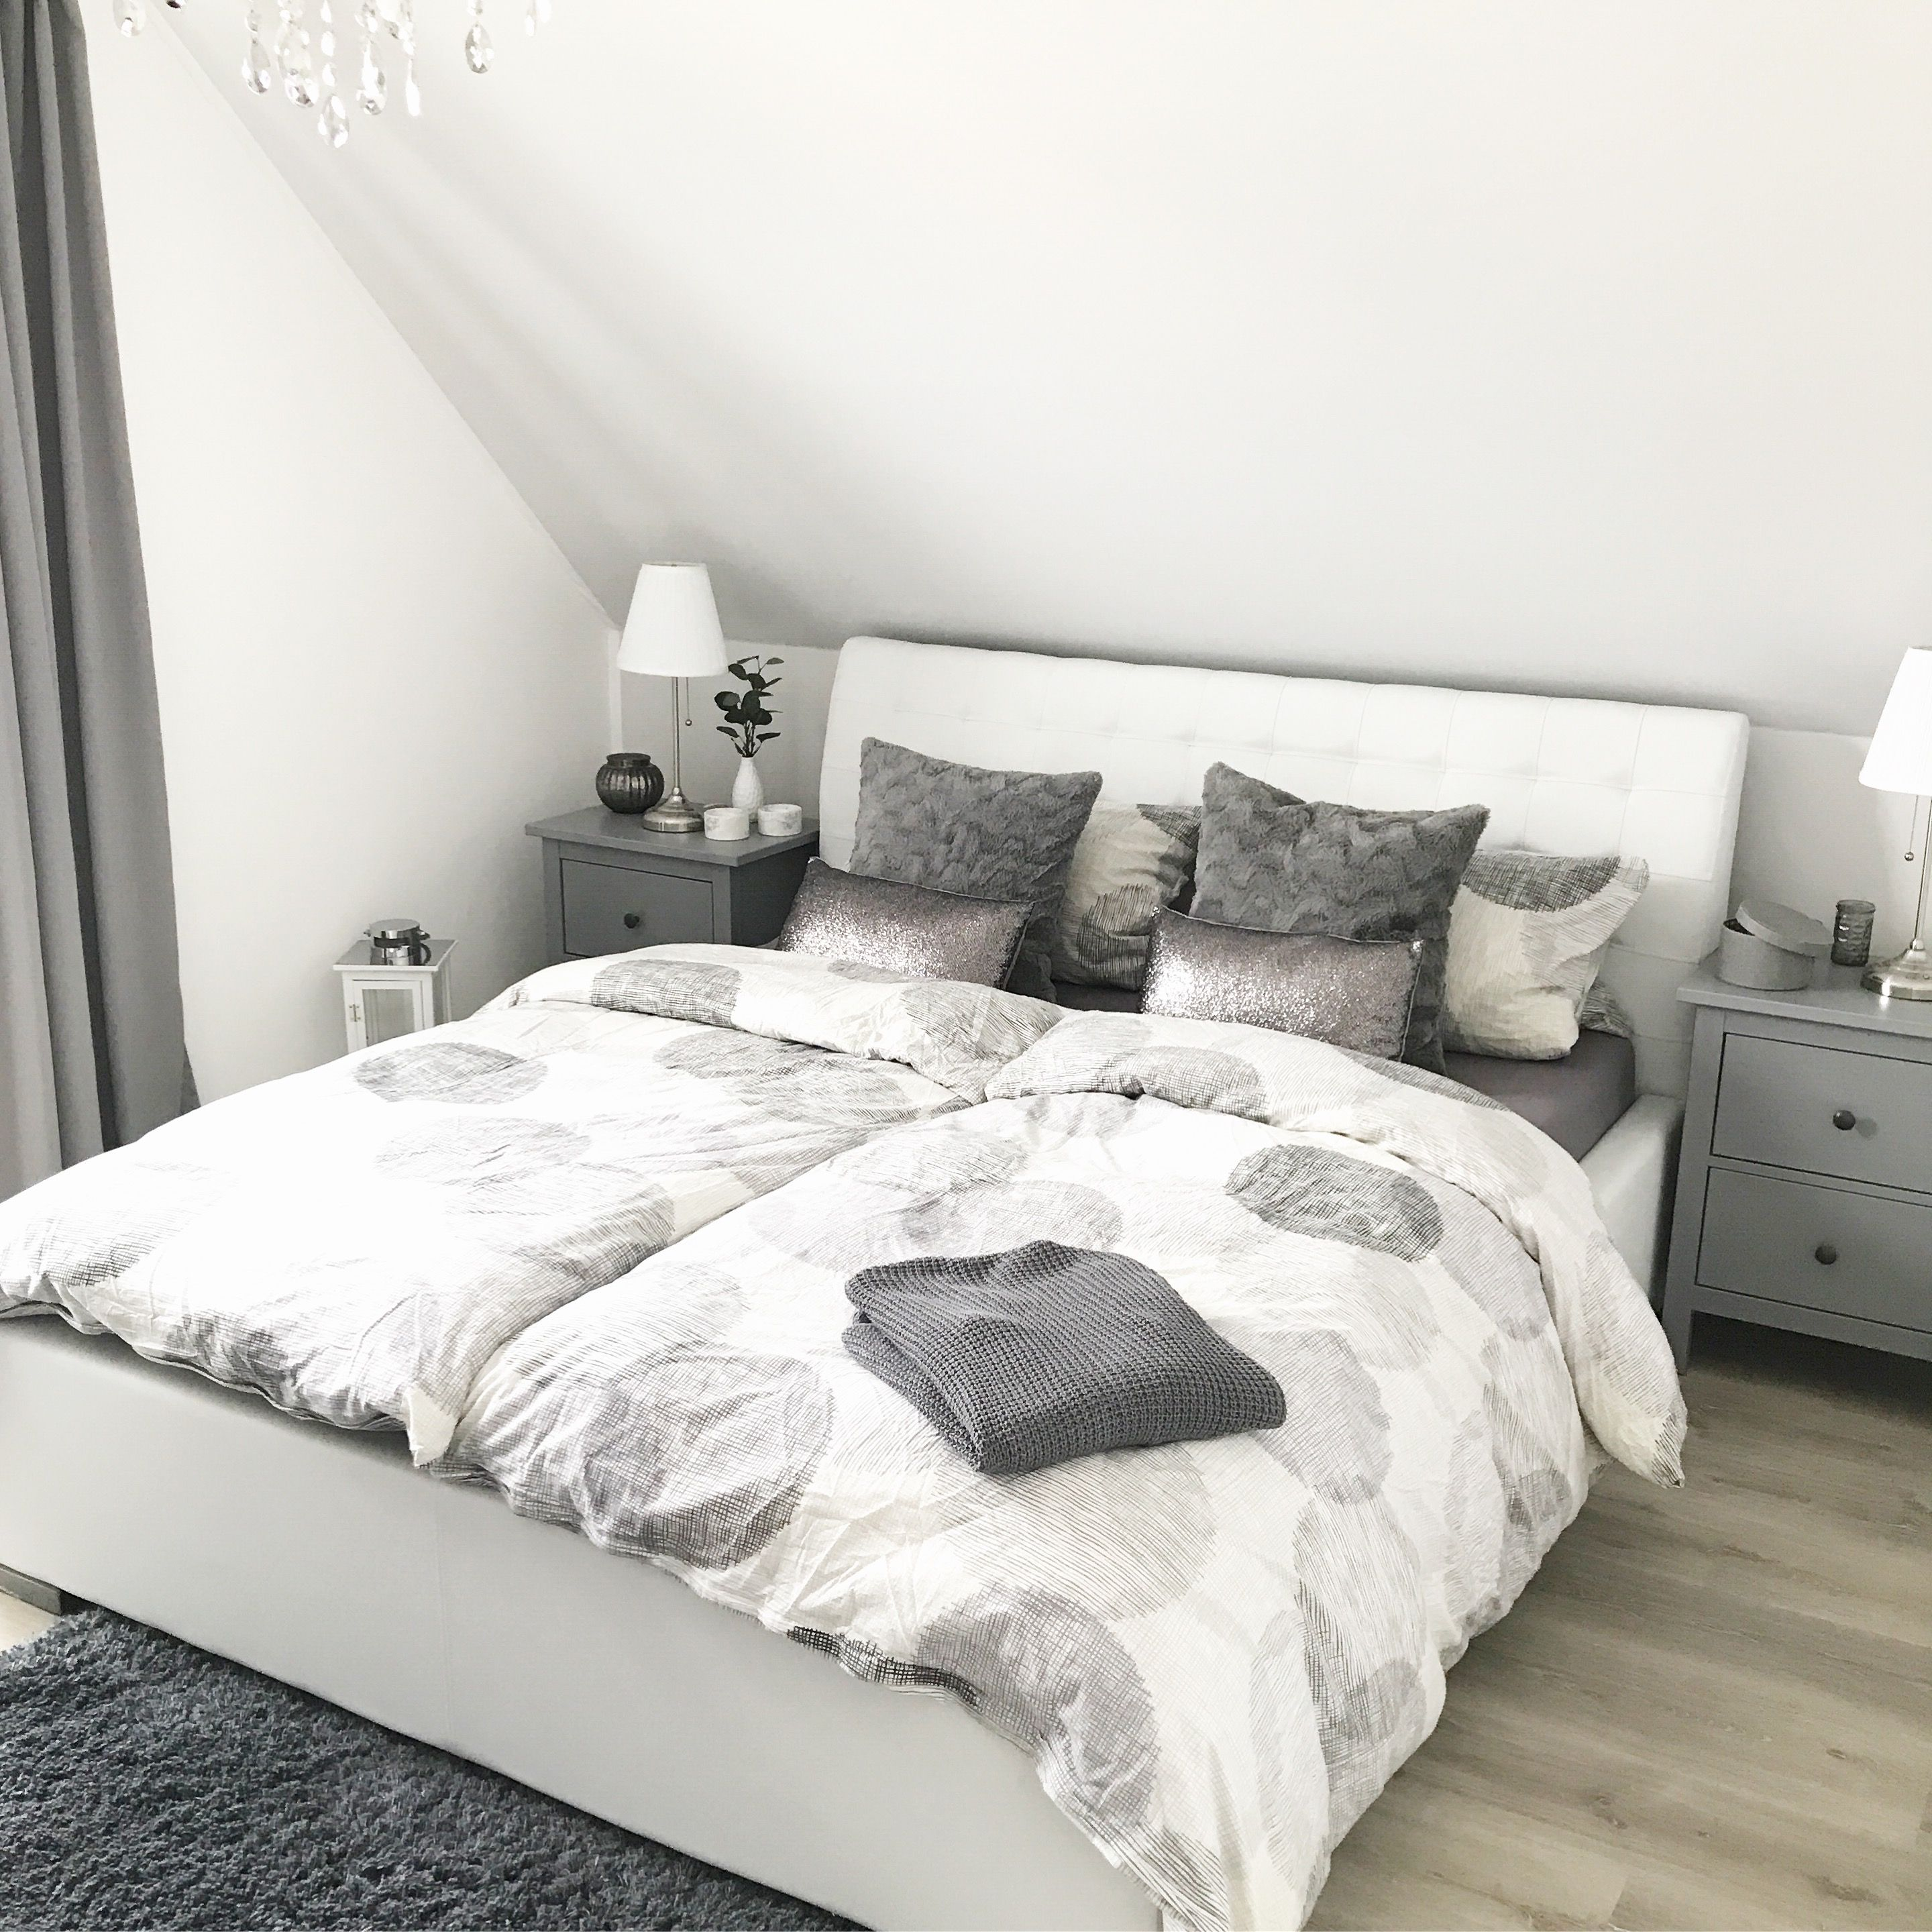 Schlafzimmer Ideen Landhausstil Instagram: Wohn.emotion Landhaus Schlafzimmer Bedroom Modern Grau Weiß Grey White | Country Bedroom, Bed Design Modern Luxury, Modern Bedroom